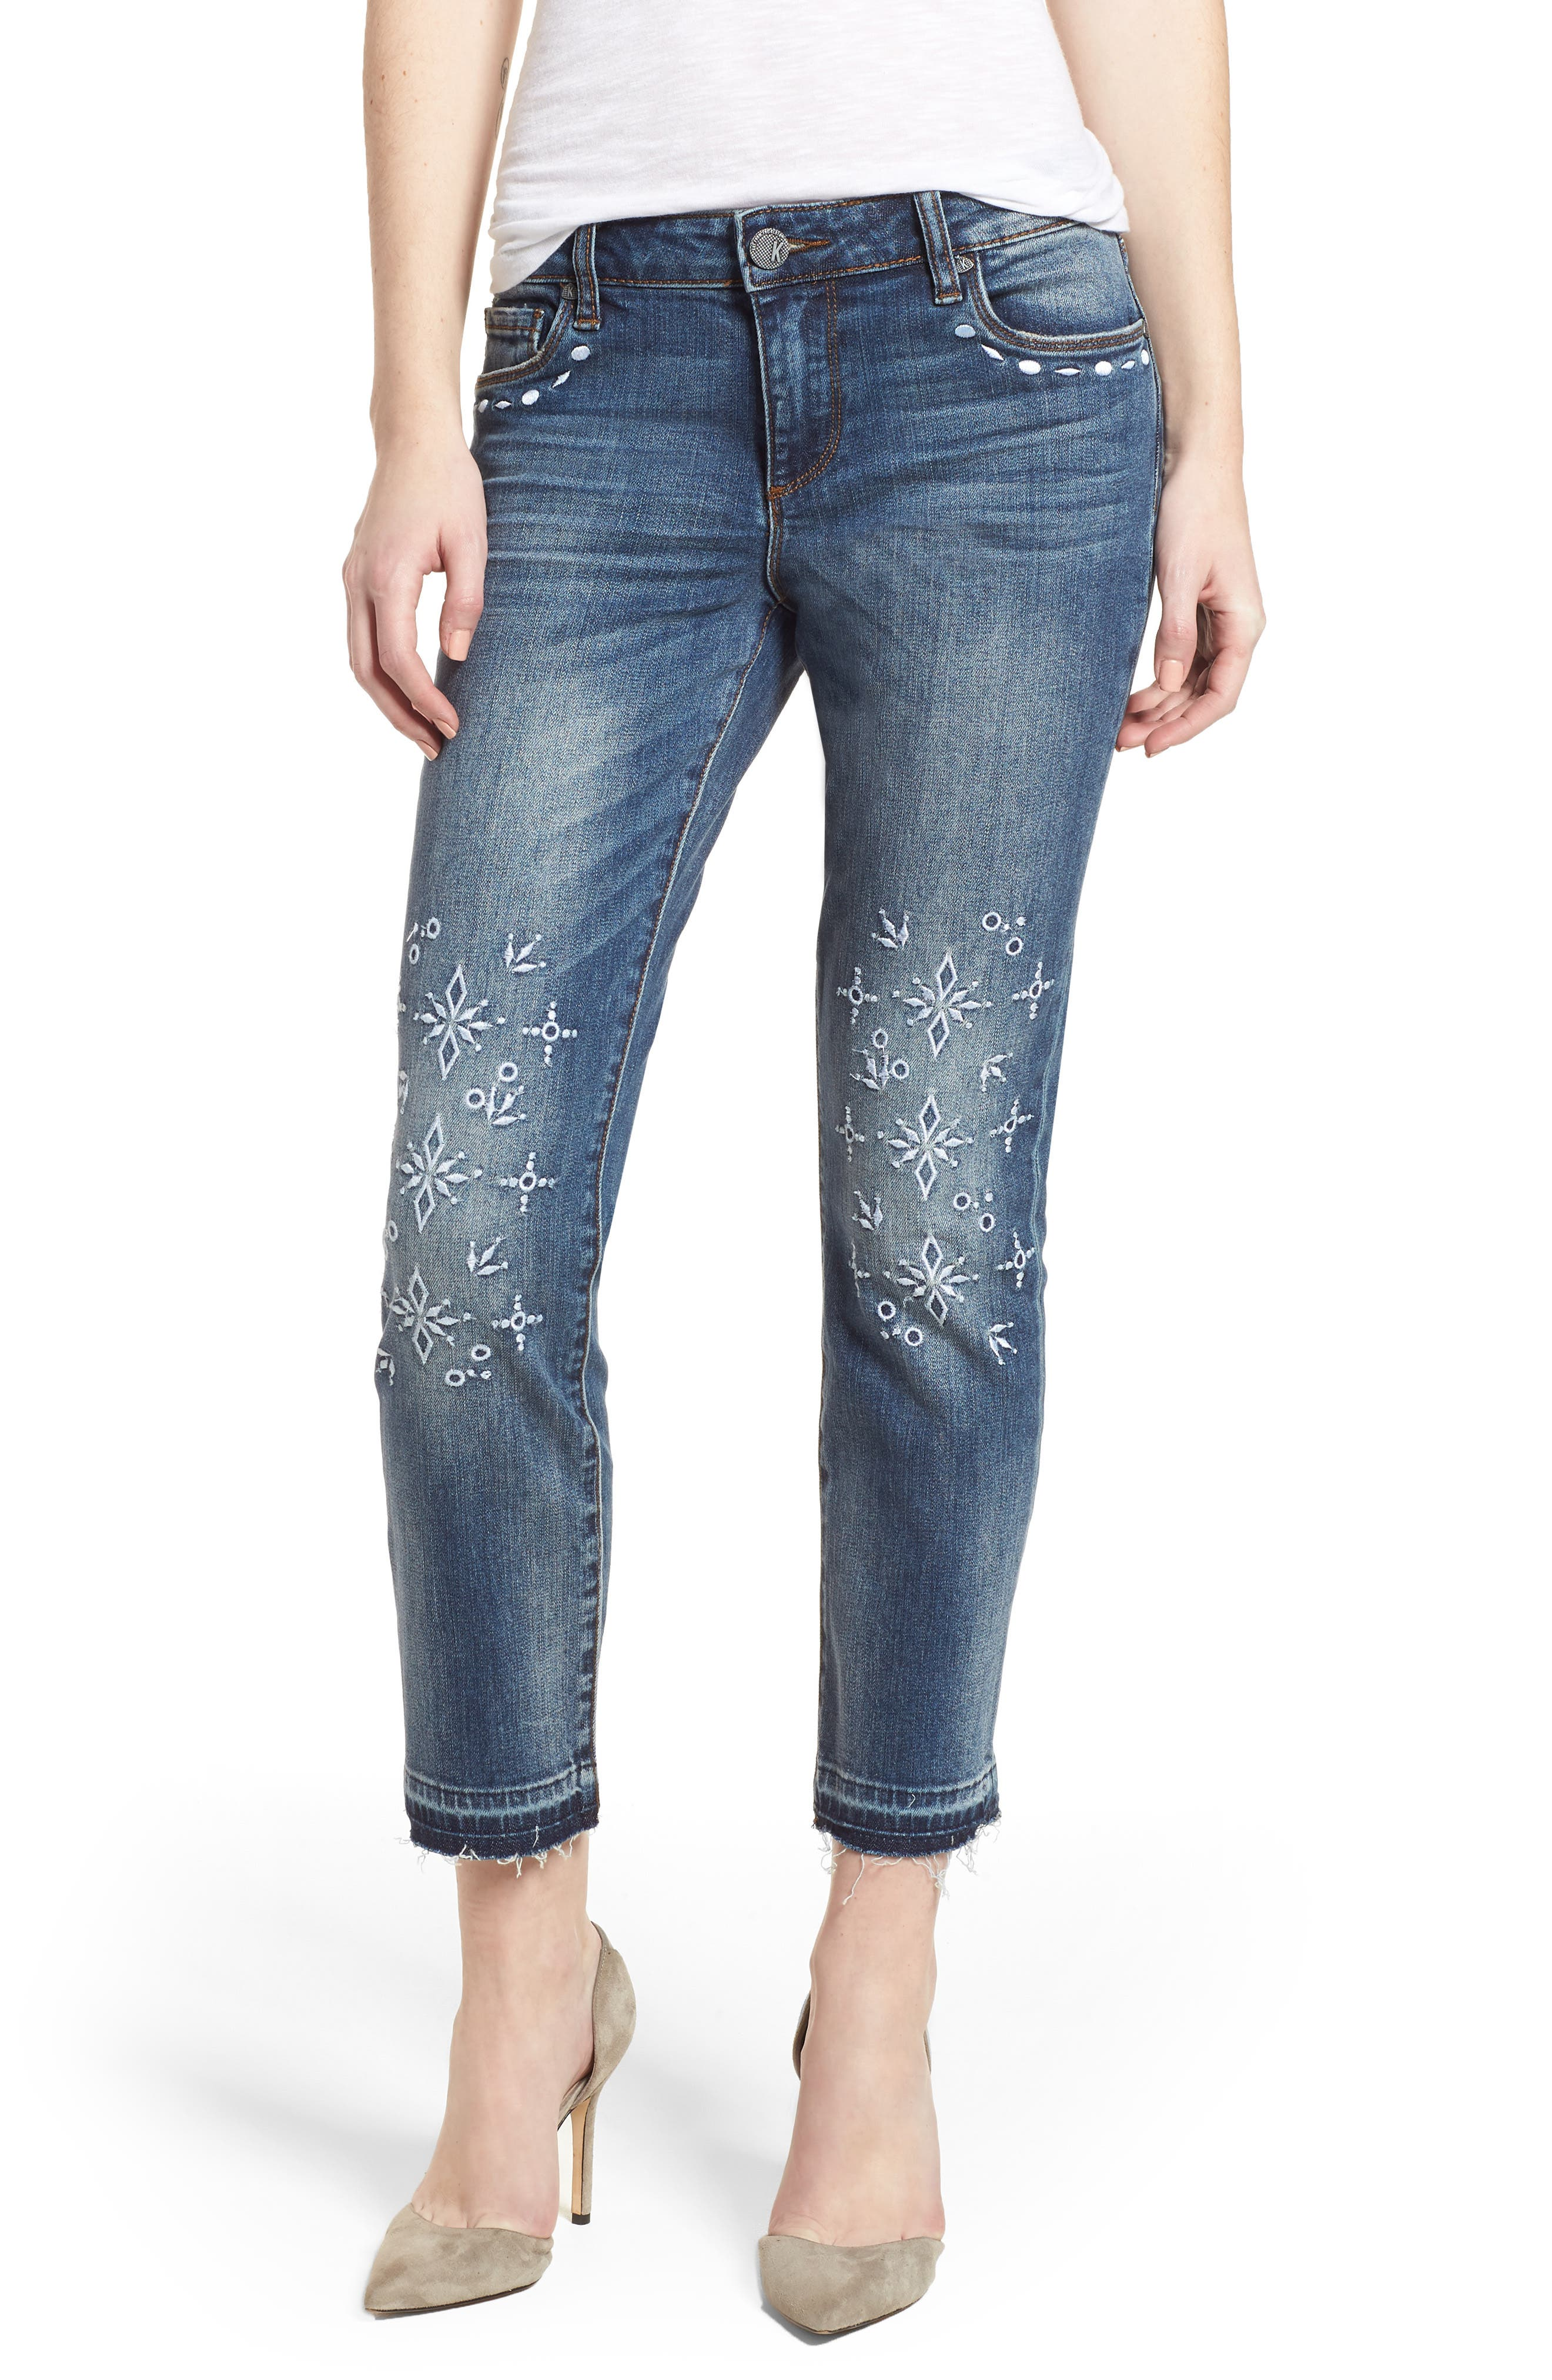 Reese Release Hem Embroidered Jeans,                             Main thumbnail 1, color,                             Originated